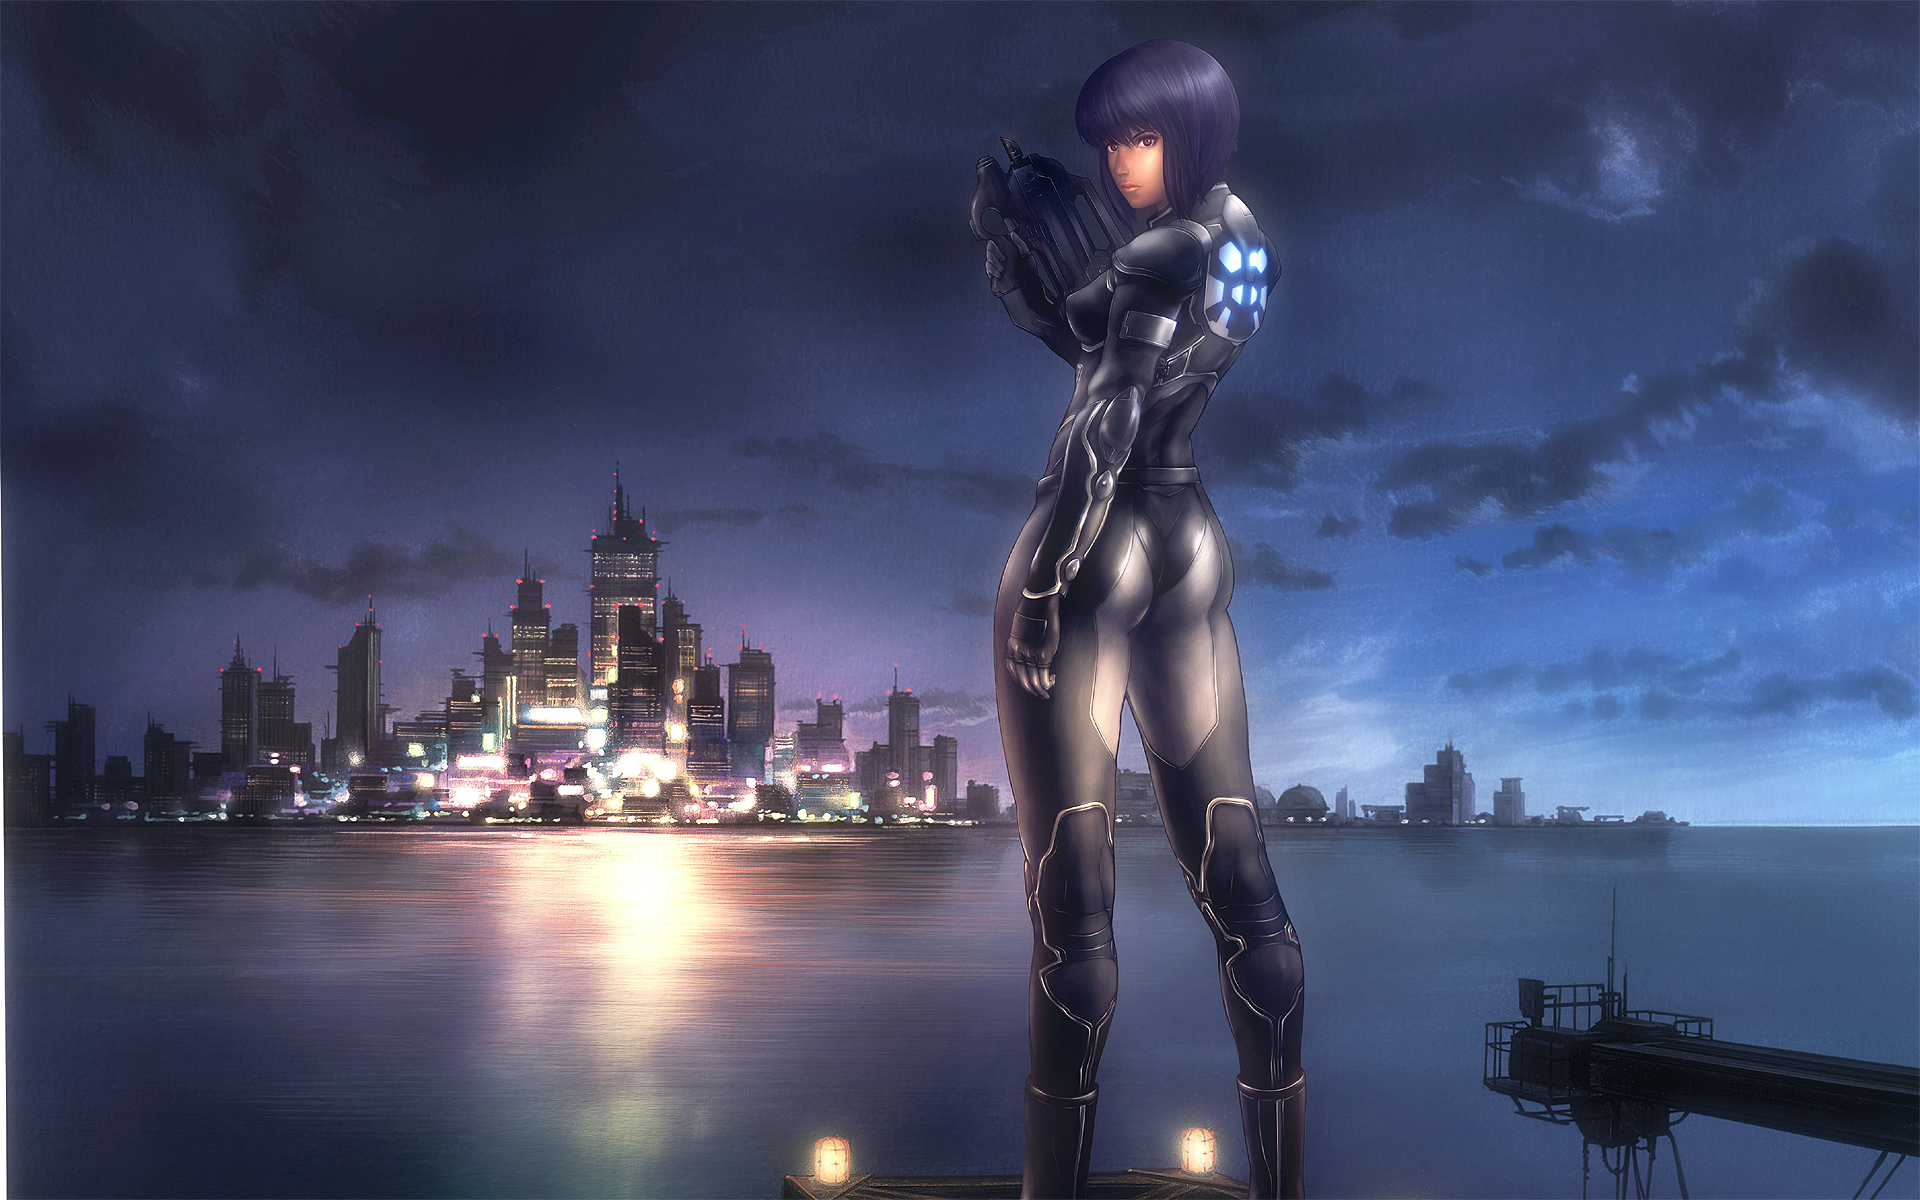 how to watch ghost in shell anime